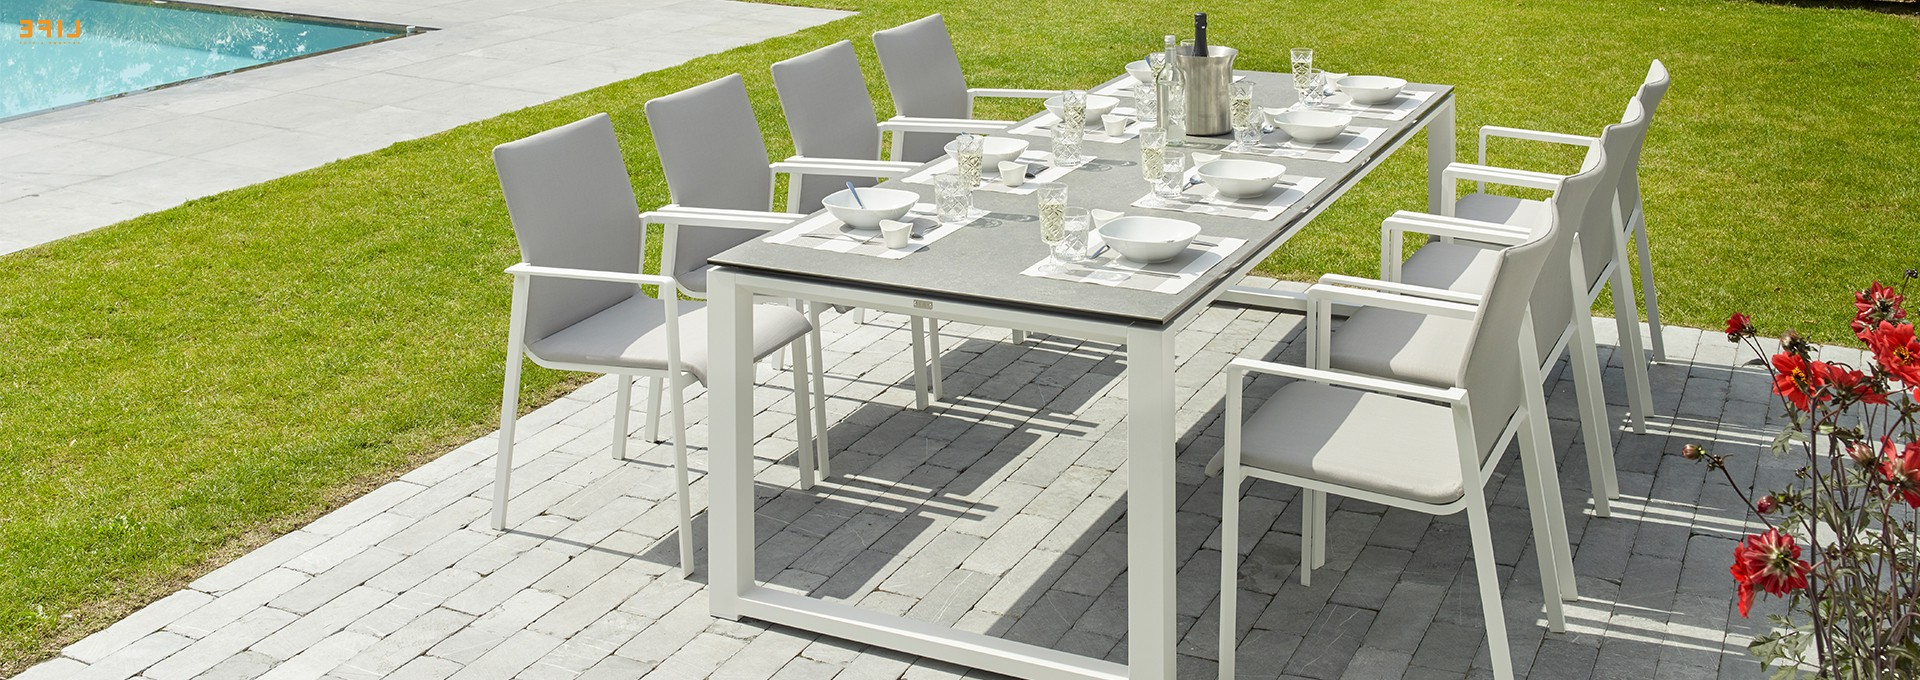 Newest Primavera Dining White – Life Outdoor Living With Regard To Osterman 6 Piece Extendable Dining Sets (Set Of 6) (View 12 of 25)